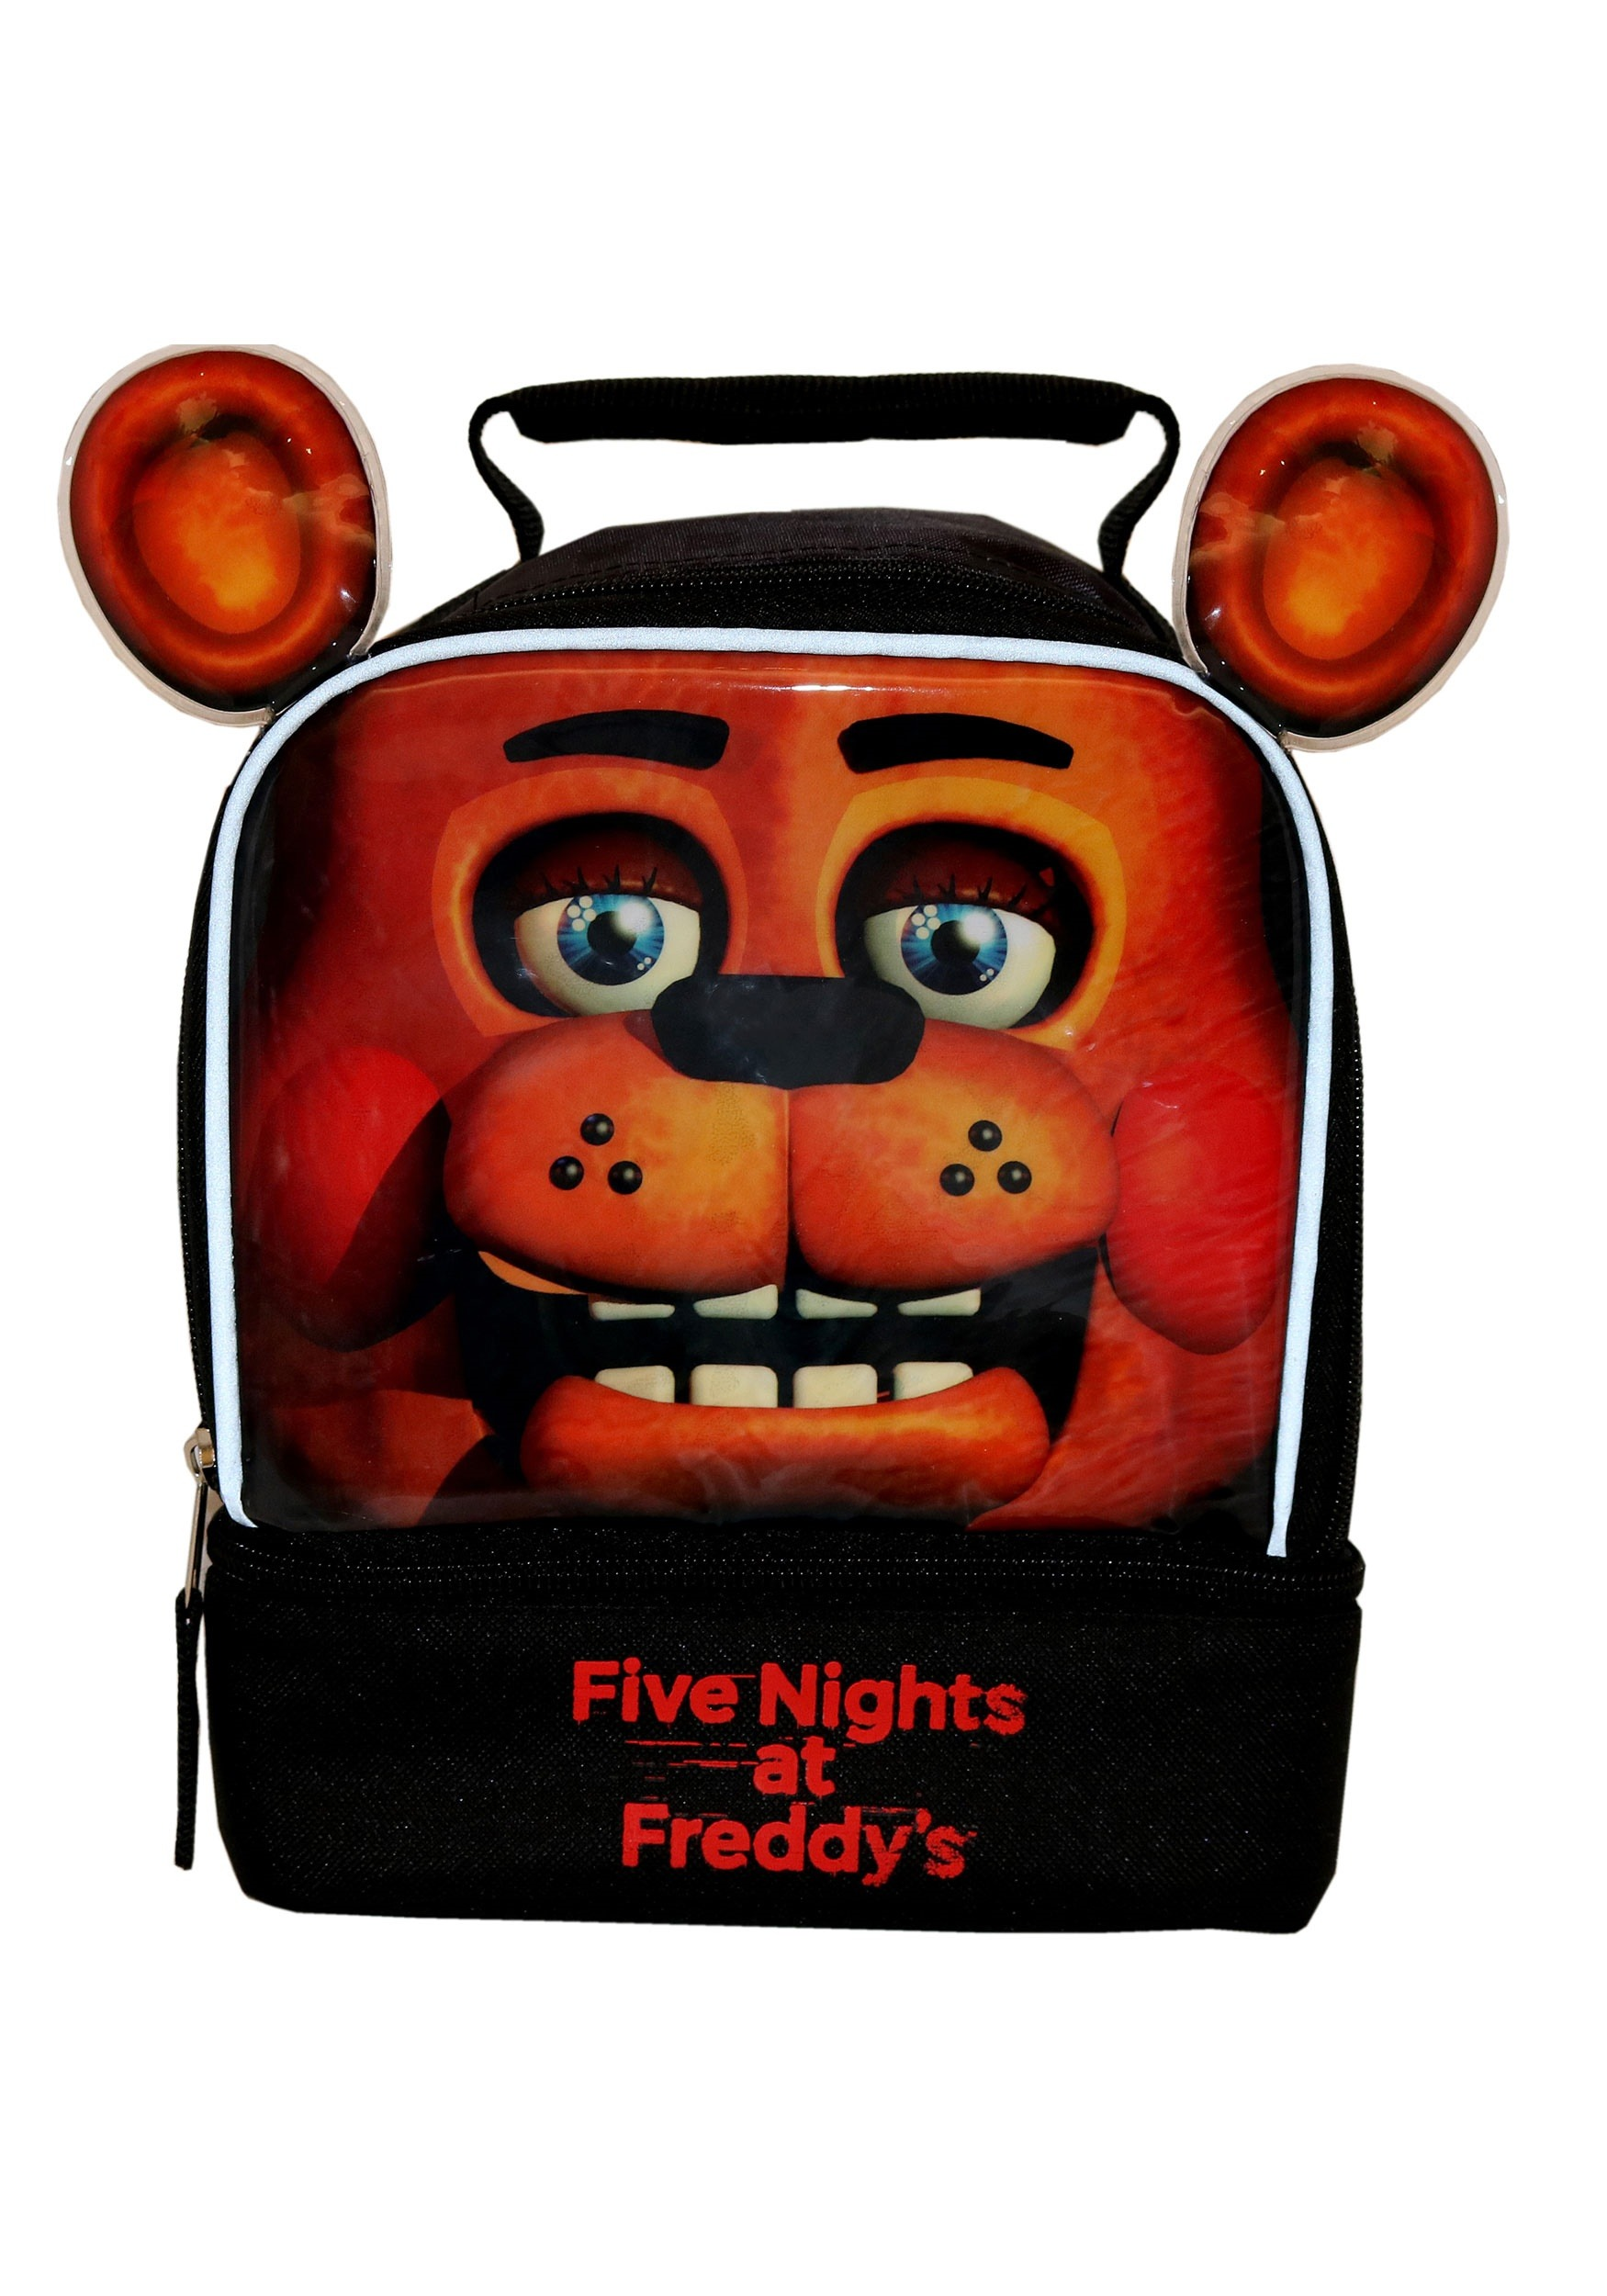 Five_Nights_at_Freddys_Lunch_Tote